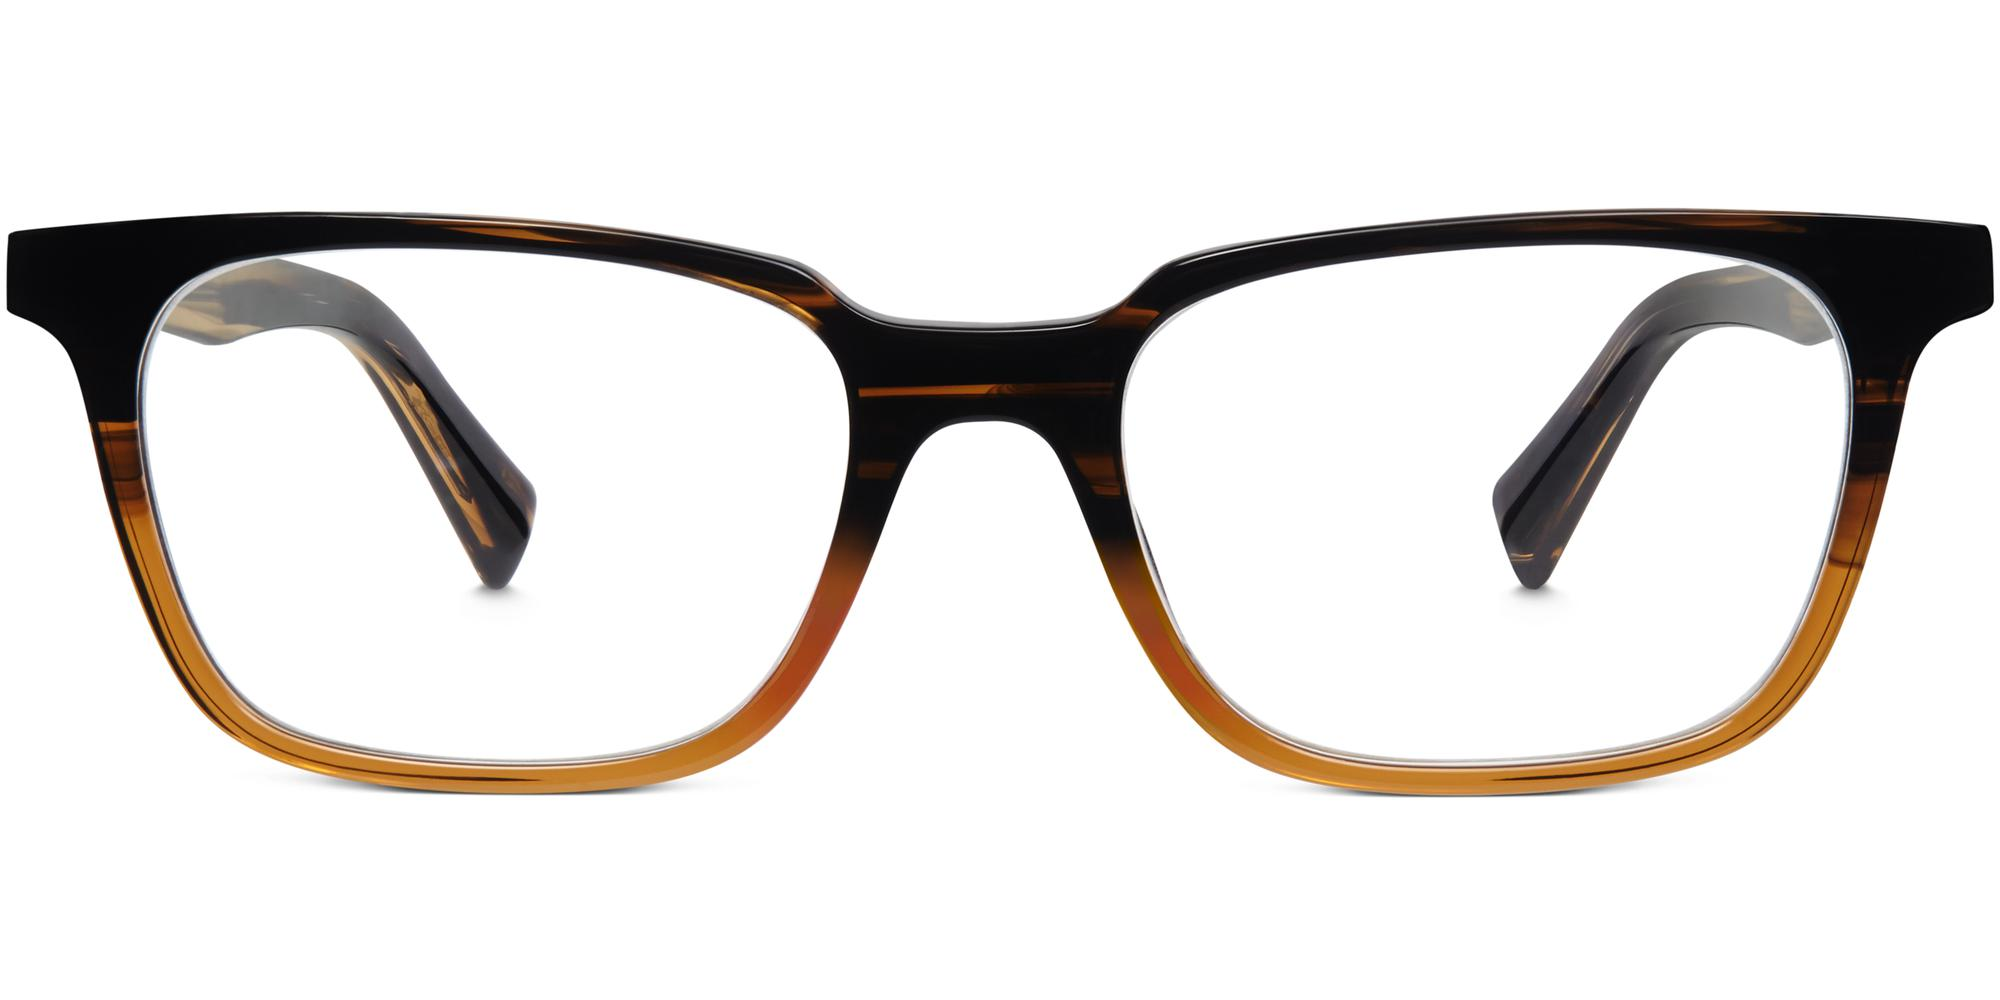 Front View Image of Barnett Eyeglasses Collection, by Warby Parker Brand, in Toffee Fade Color